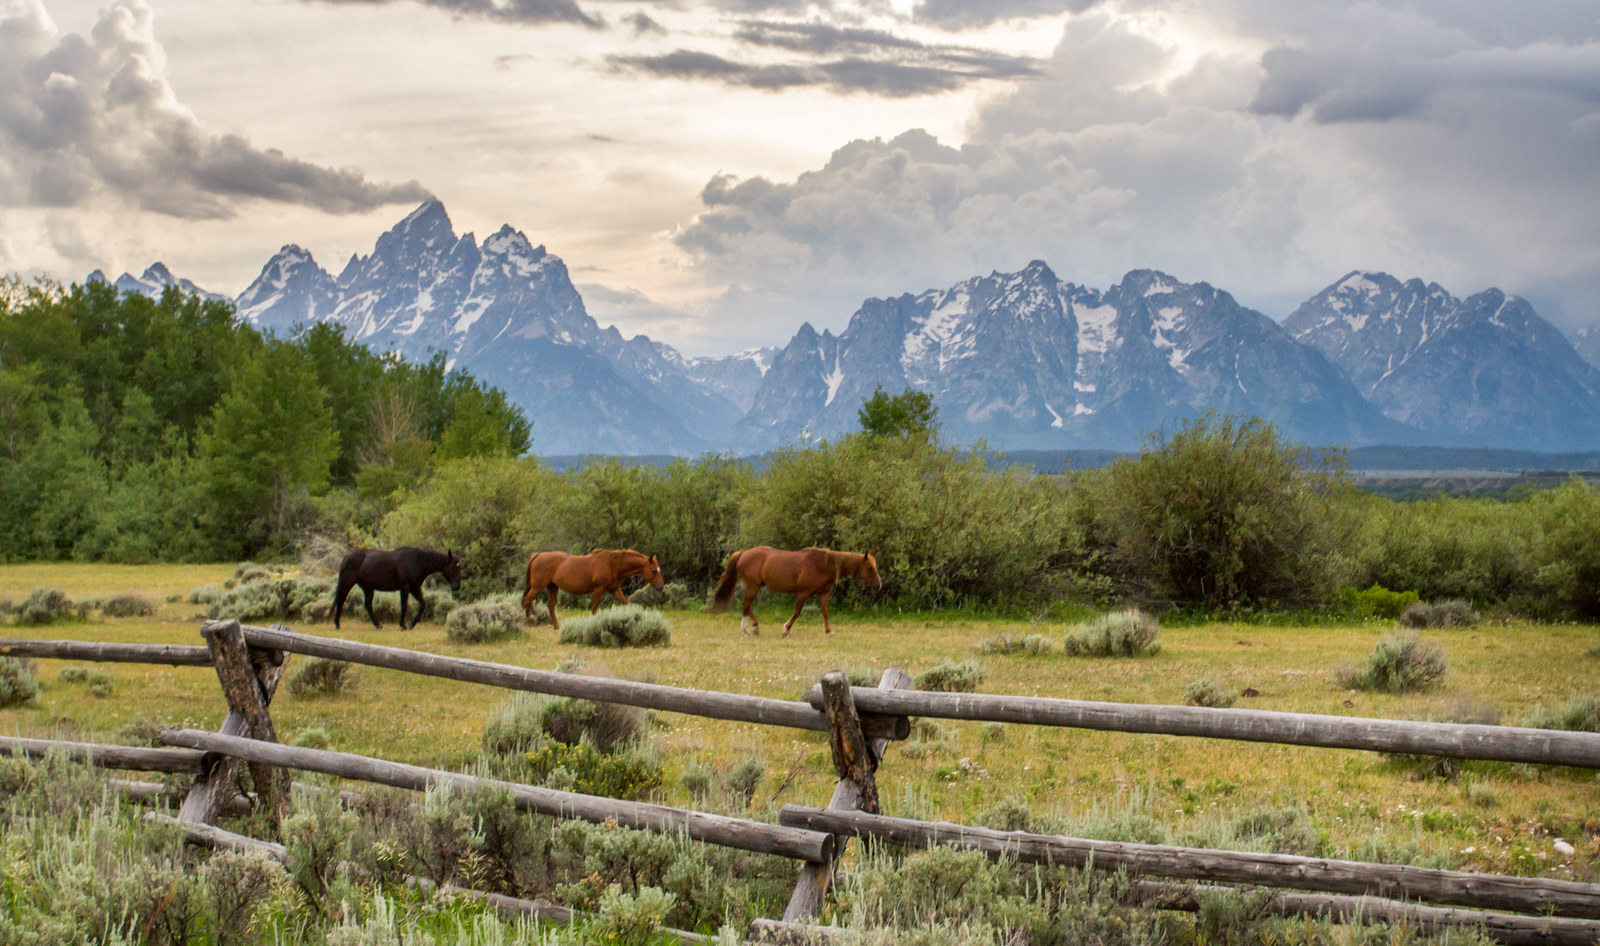 USA: Grand Teton National Park -  This park encompasses the Teton Mountain range and Jackson Hole, a valley that serves as a popular year-round tourist destination.